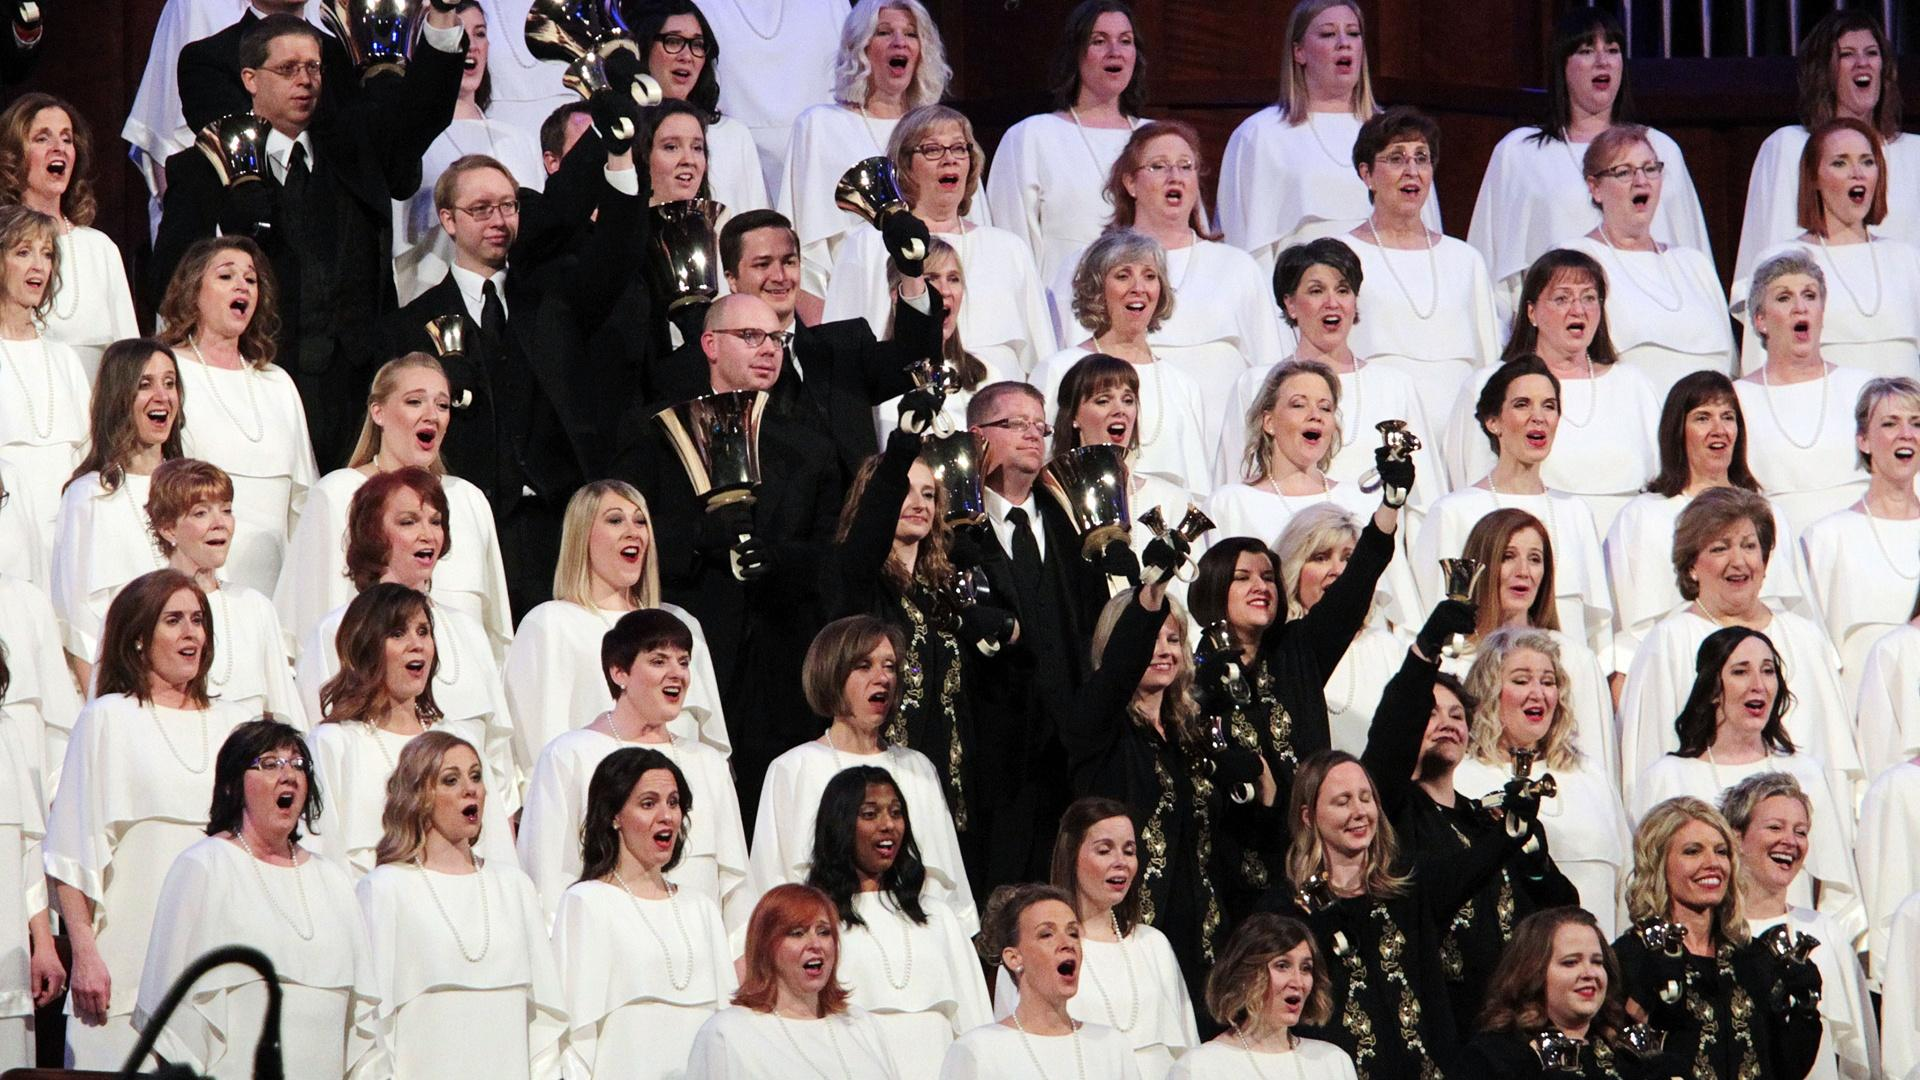 """The Tabernacle Choir & Orchestra at Temple Square perform """"Fill the World with Love."""""""